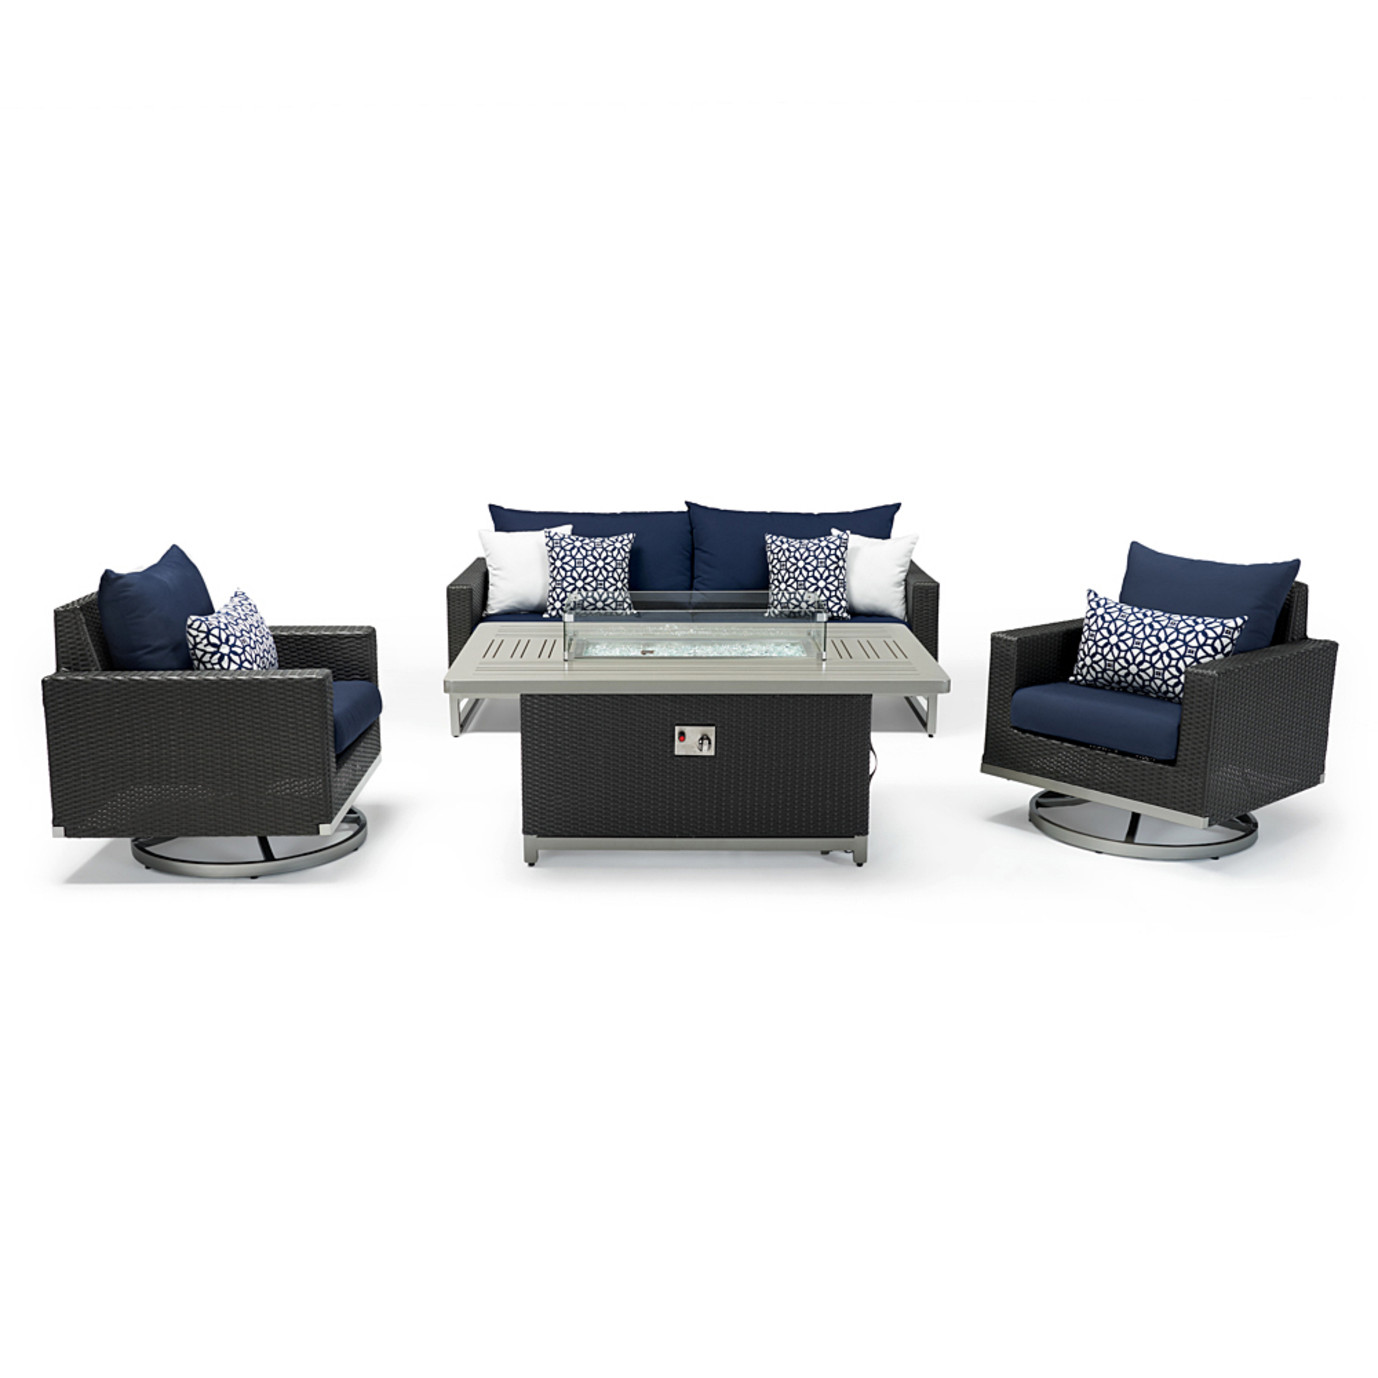 Milo™ Espresso 4pc Motion Fire Set - Navy Blue